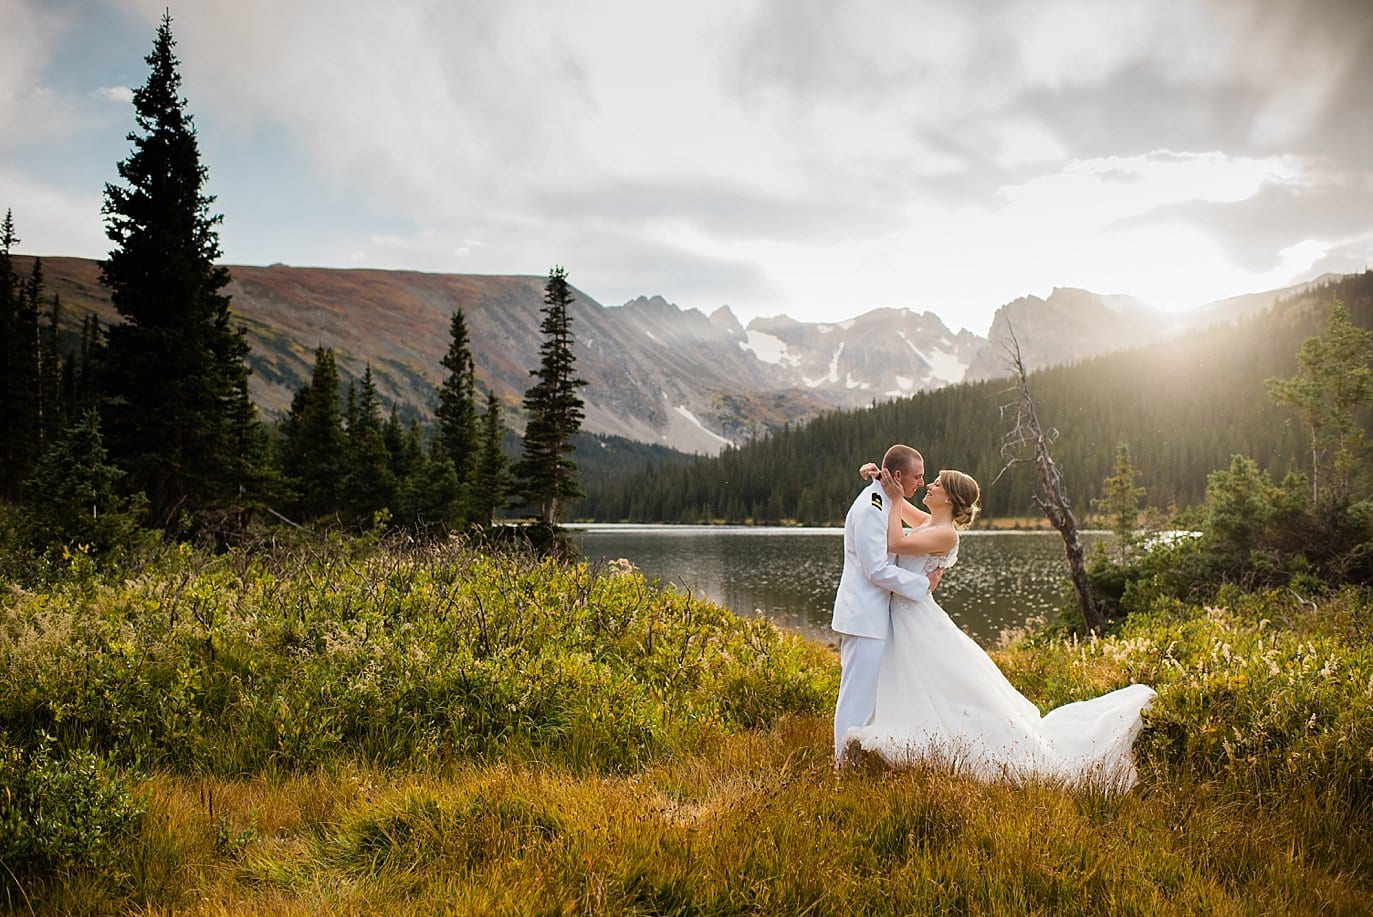 bride and groom in field by Long Lake after Colorado elopement